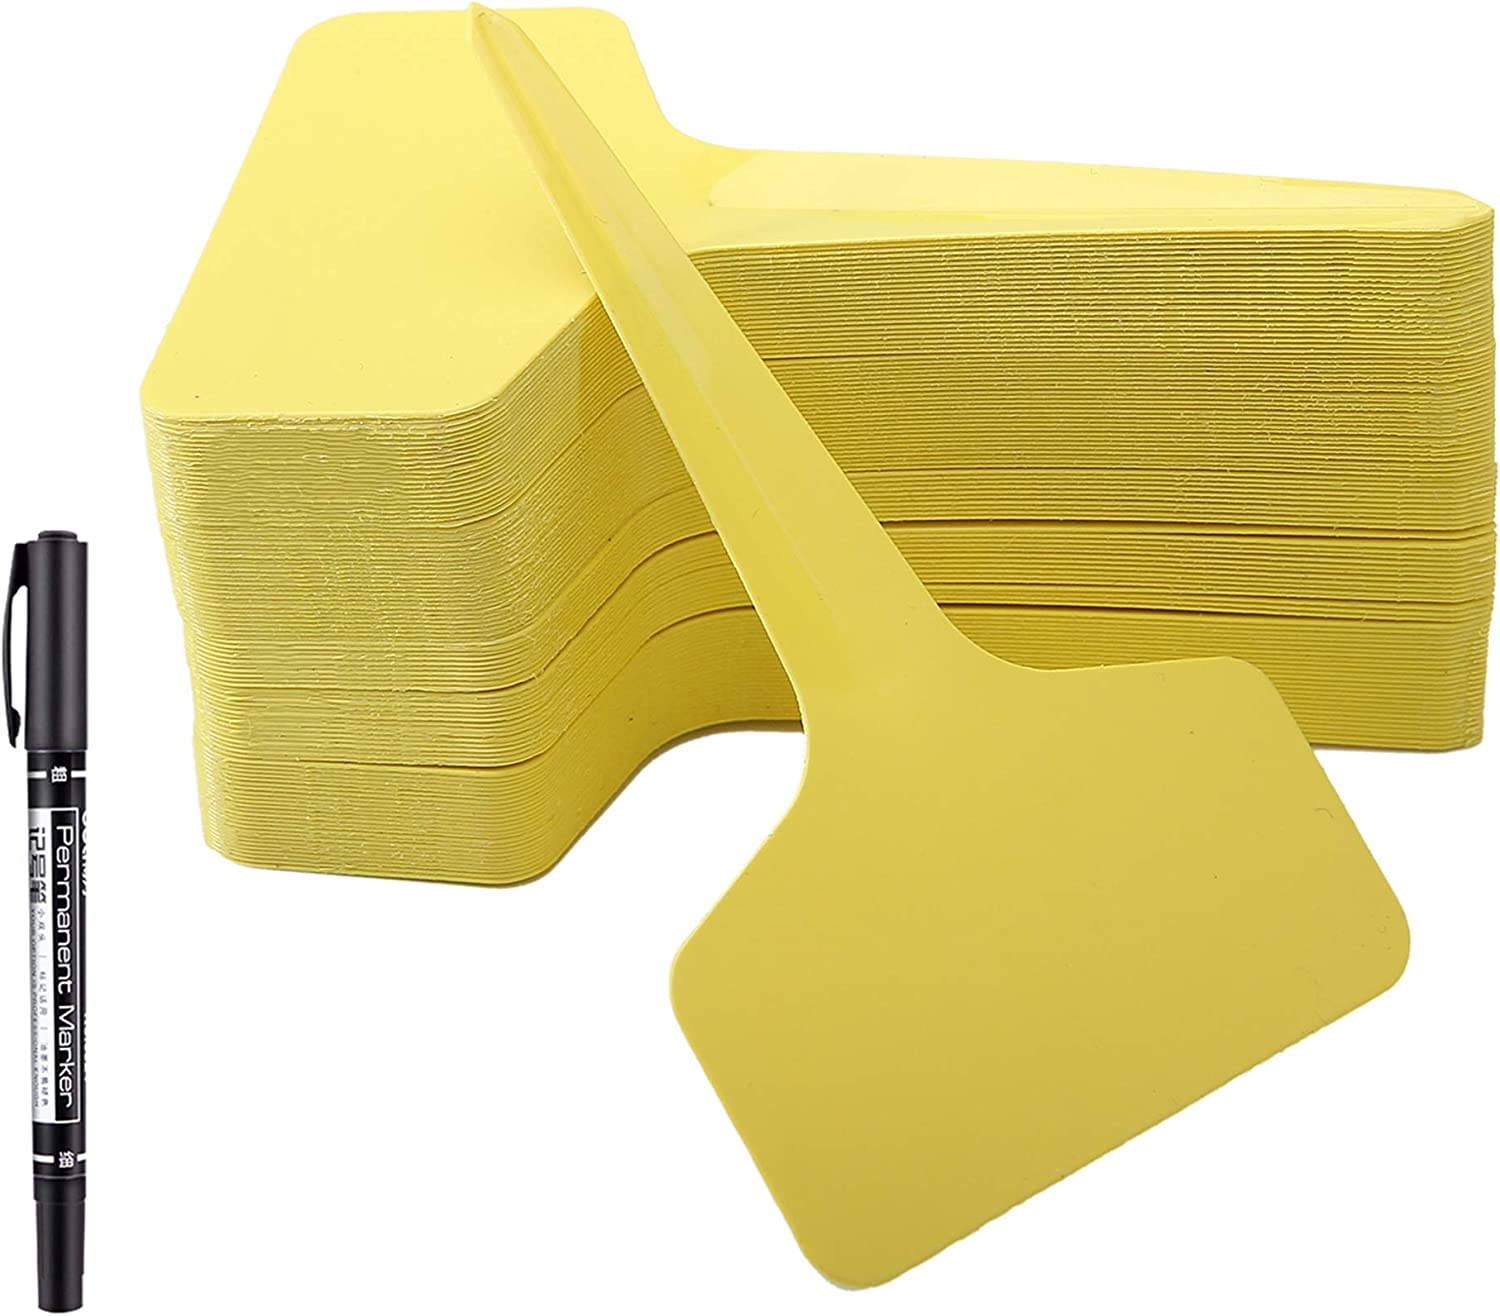 100 Pcs T-Type Plant Labels with a Gel Pen, Waterproof Nursery Plant Tags Plastic Garden Markers, Yellow, 6 x 10cm